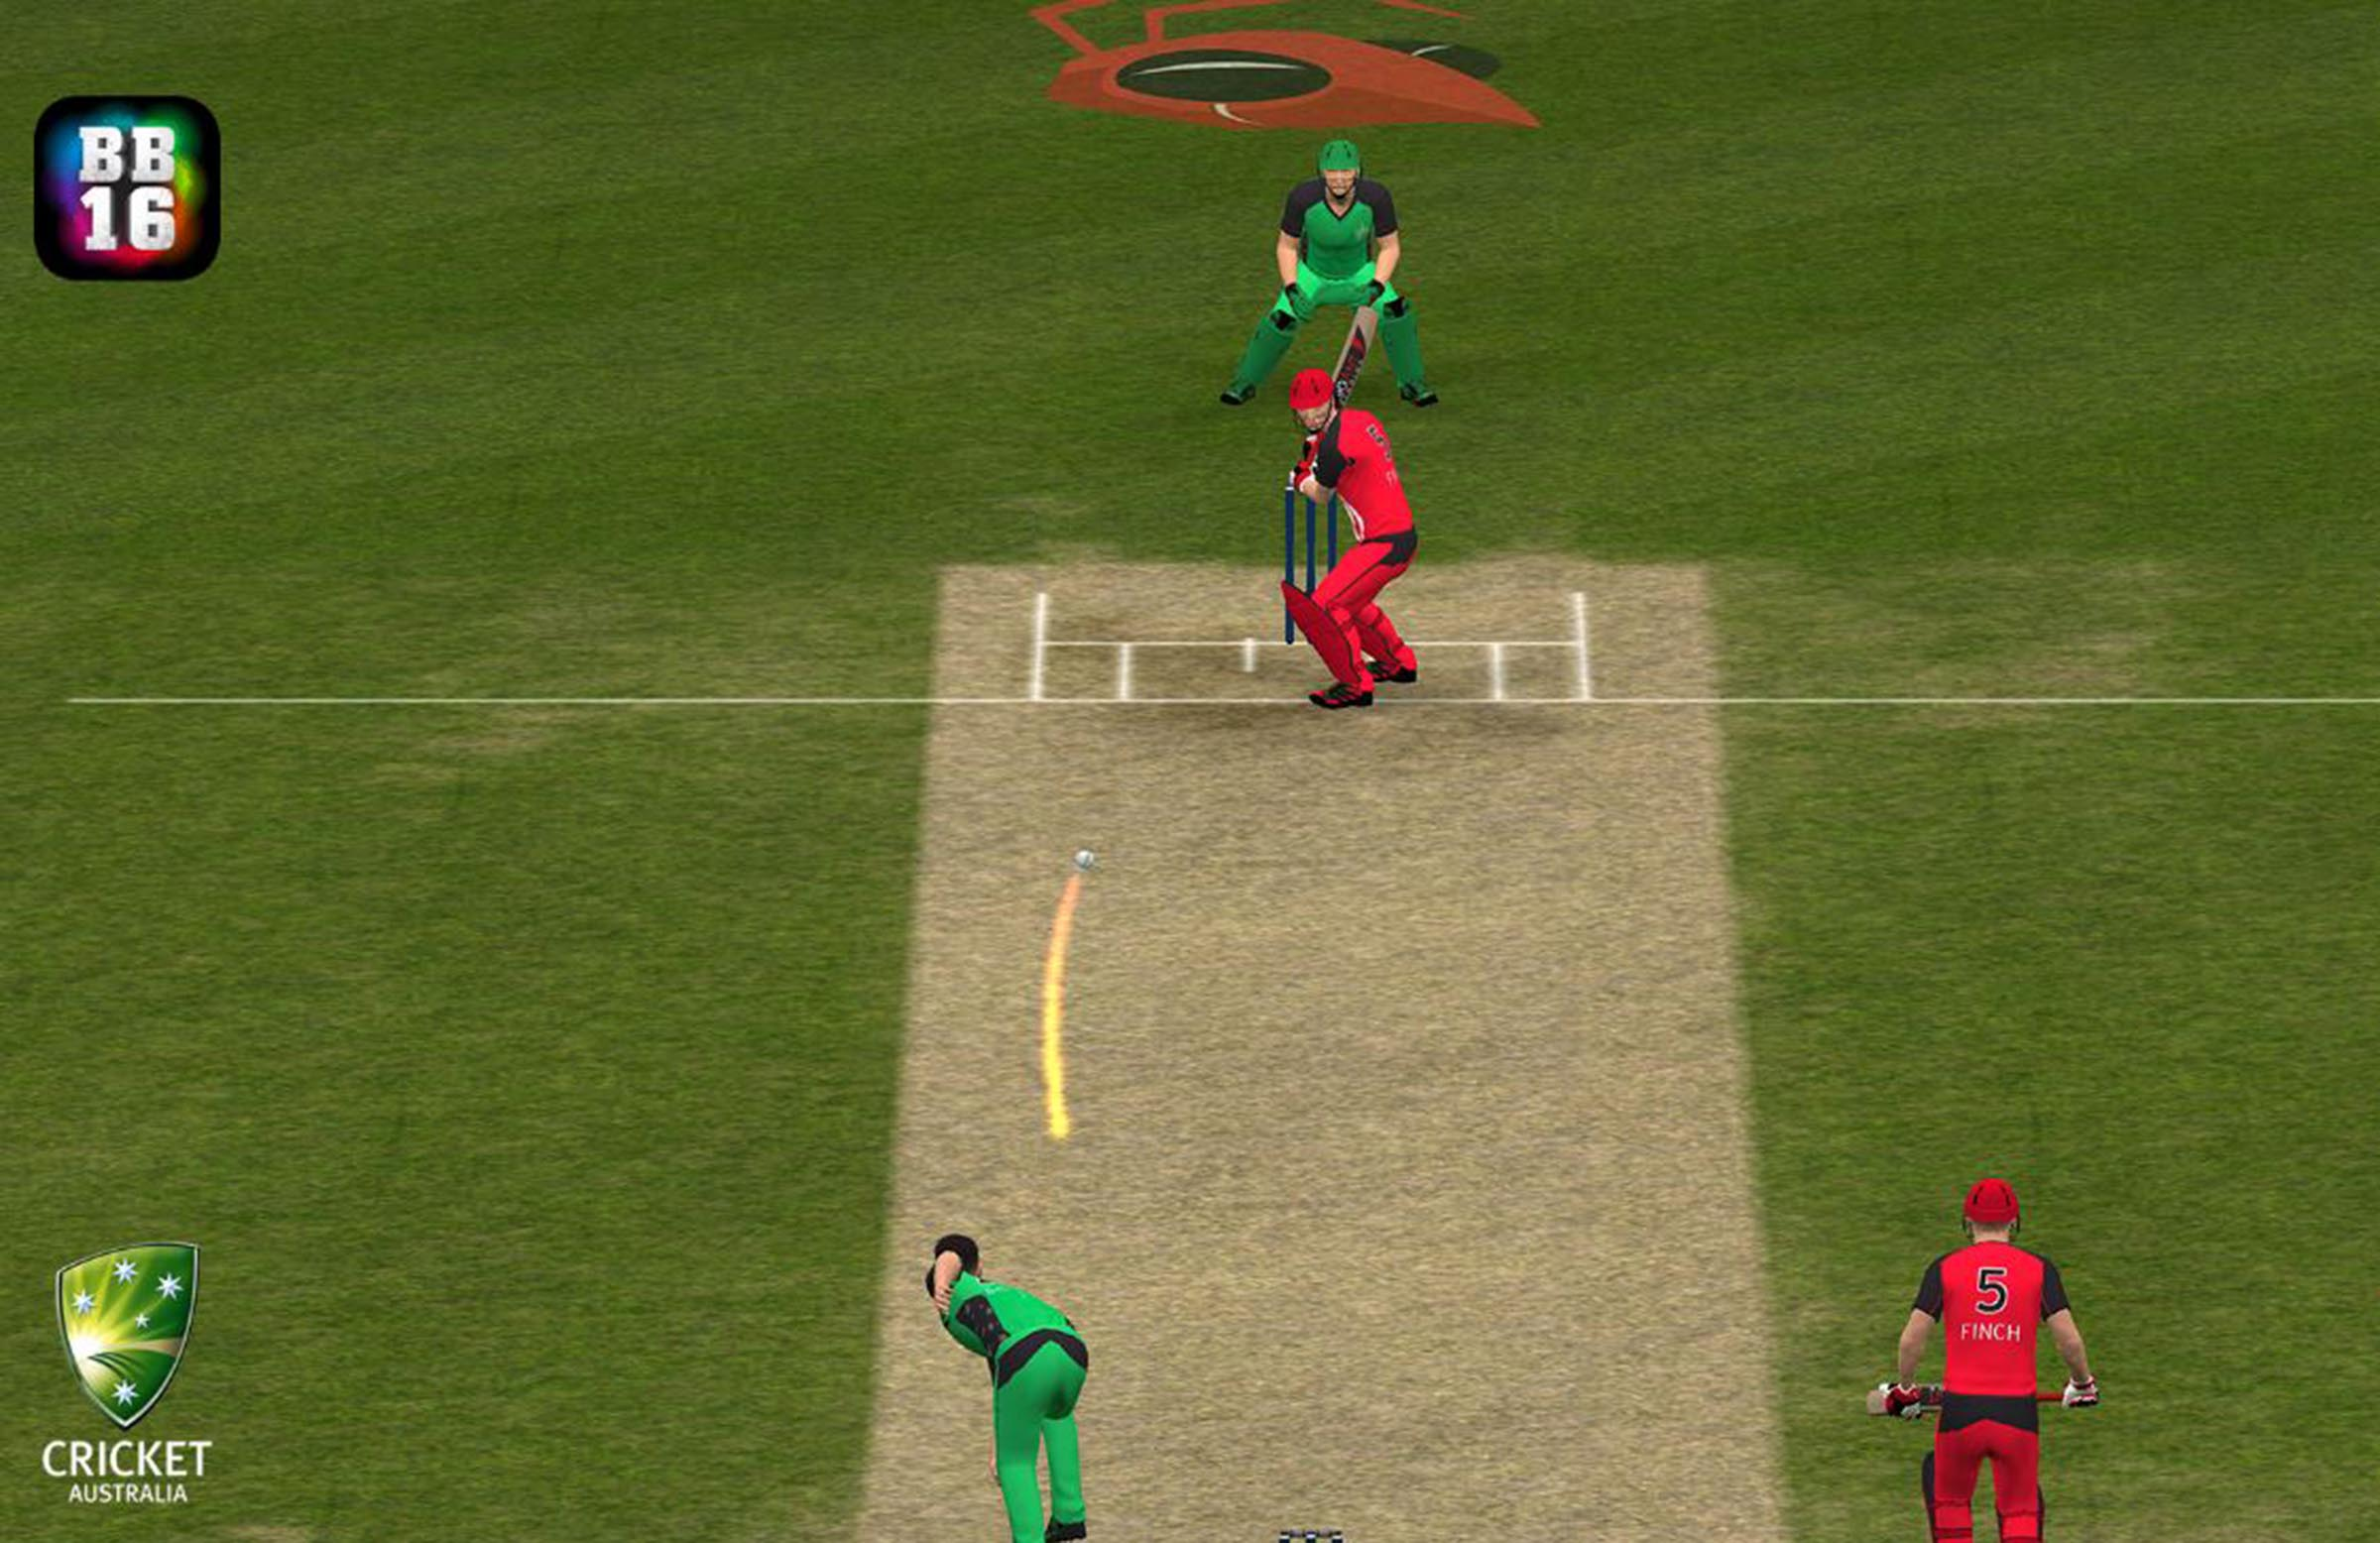 mobile cricket games free download for nokia c1-01